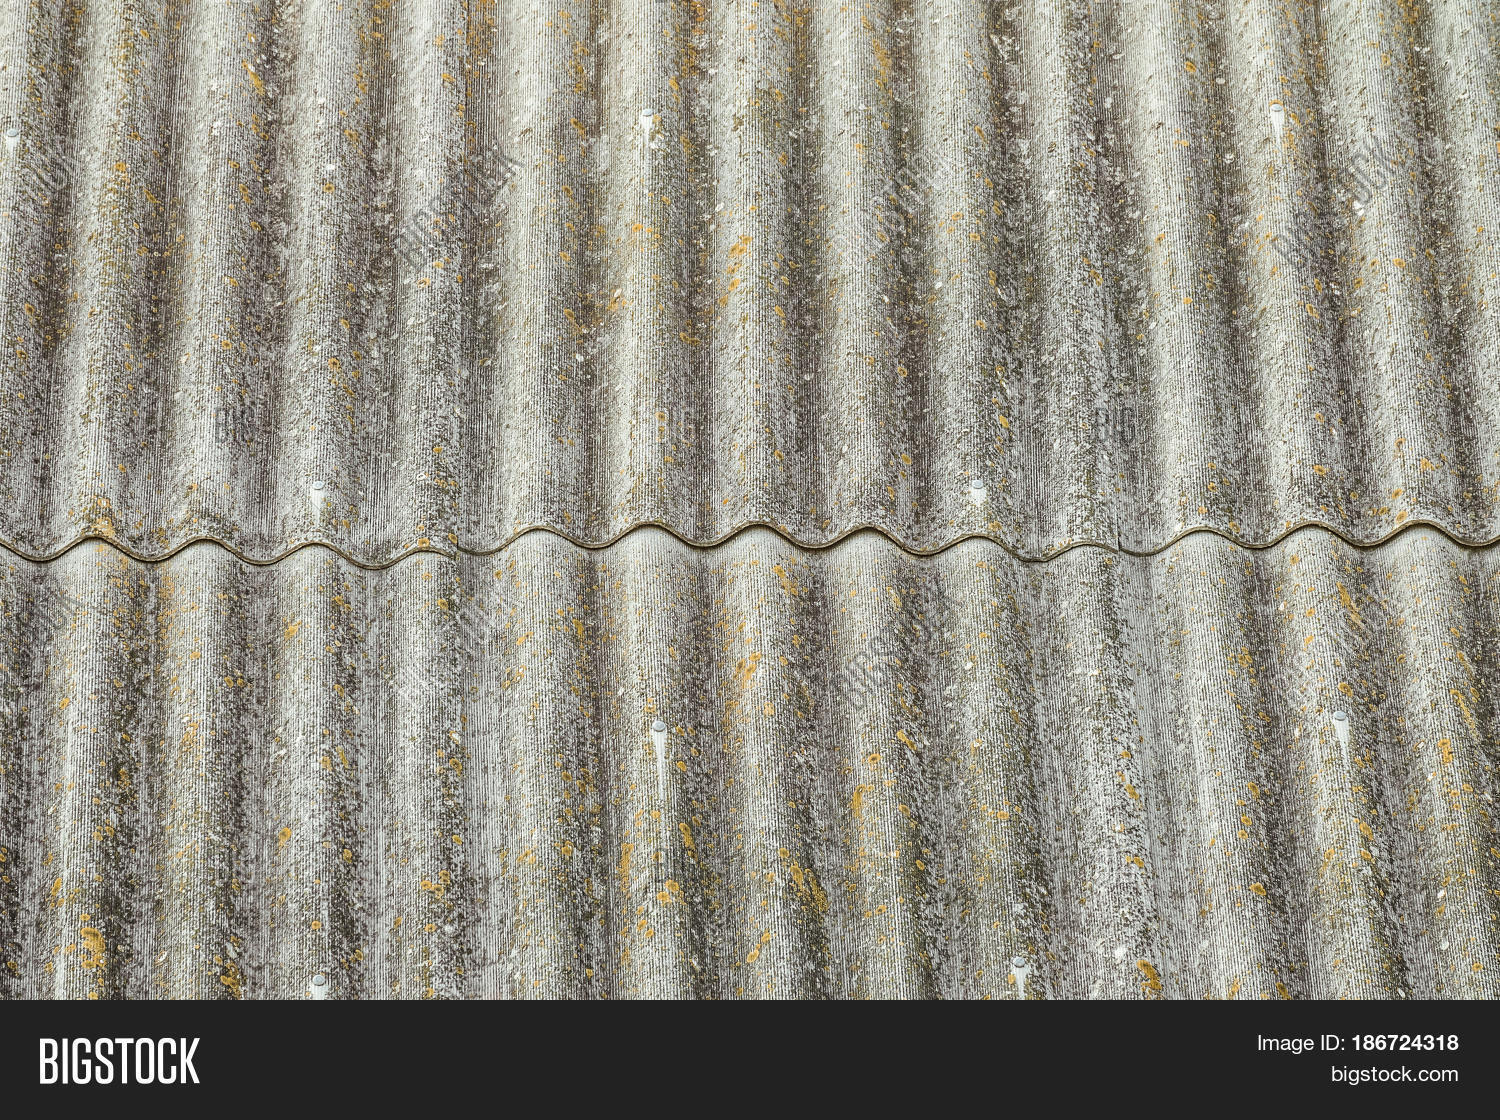 Roof tiles made of asbestos best roof 2017 non asbestos roofing tiles cta1050 coto china s dailygadgetfo Images